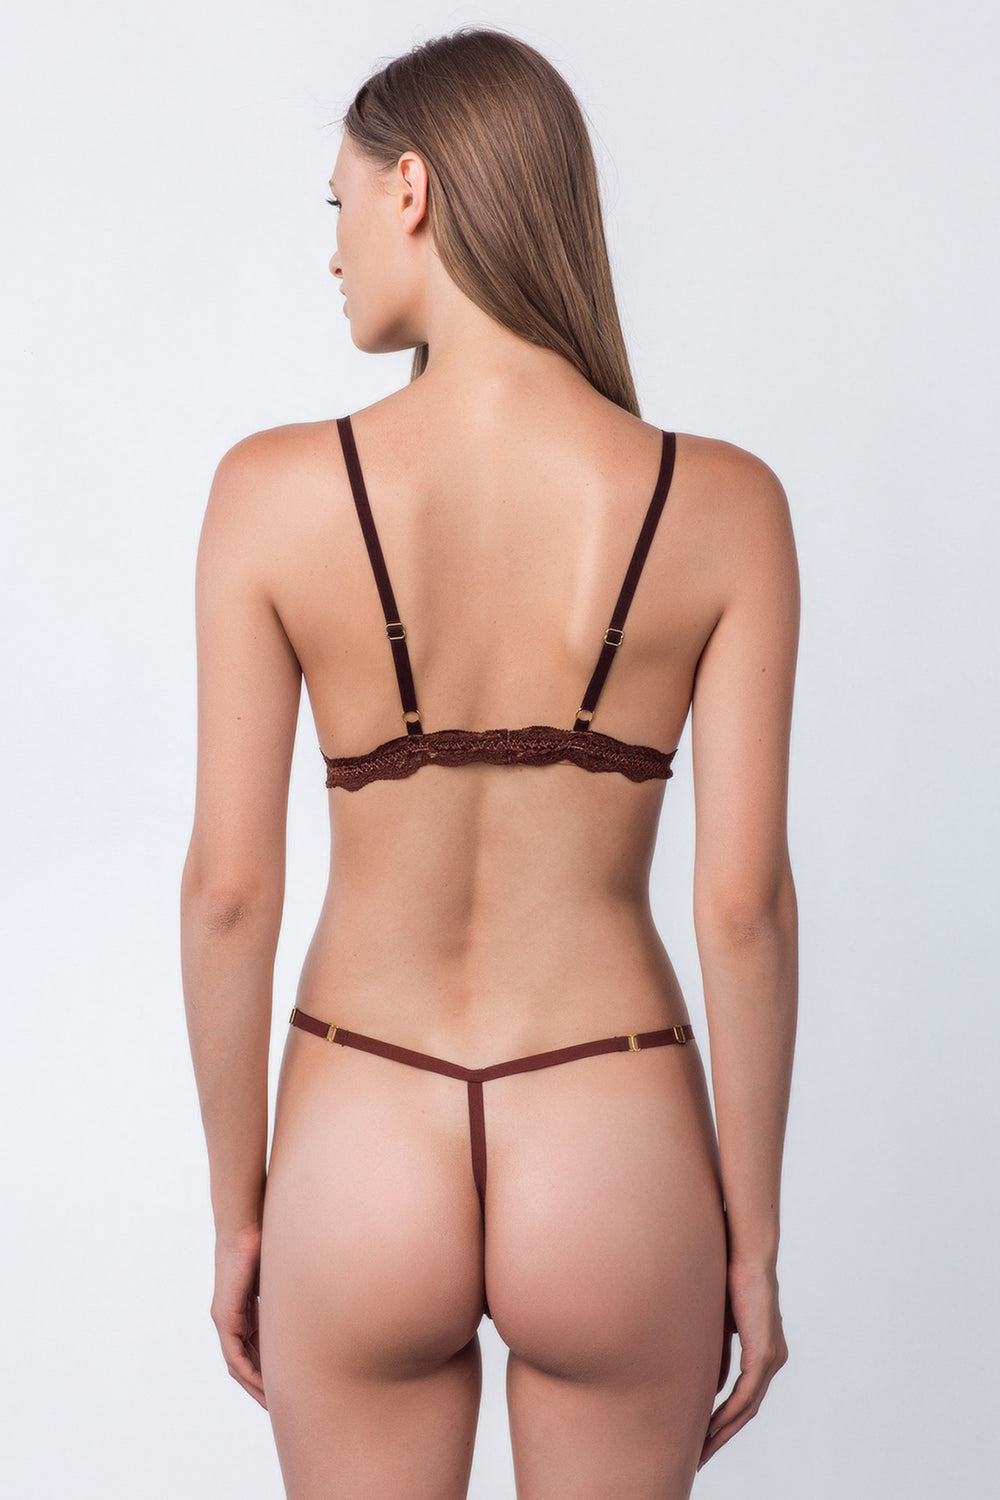 brown mesh thong panty sexy one size machine washable